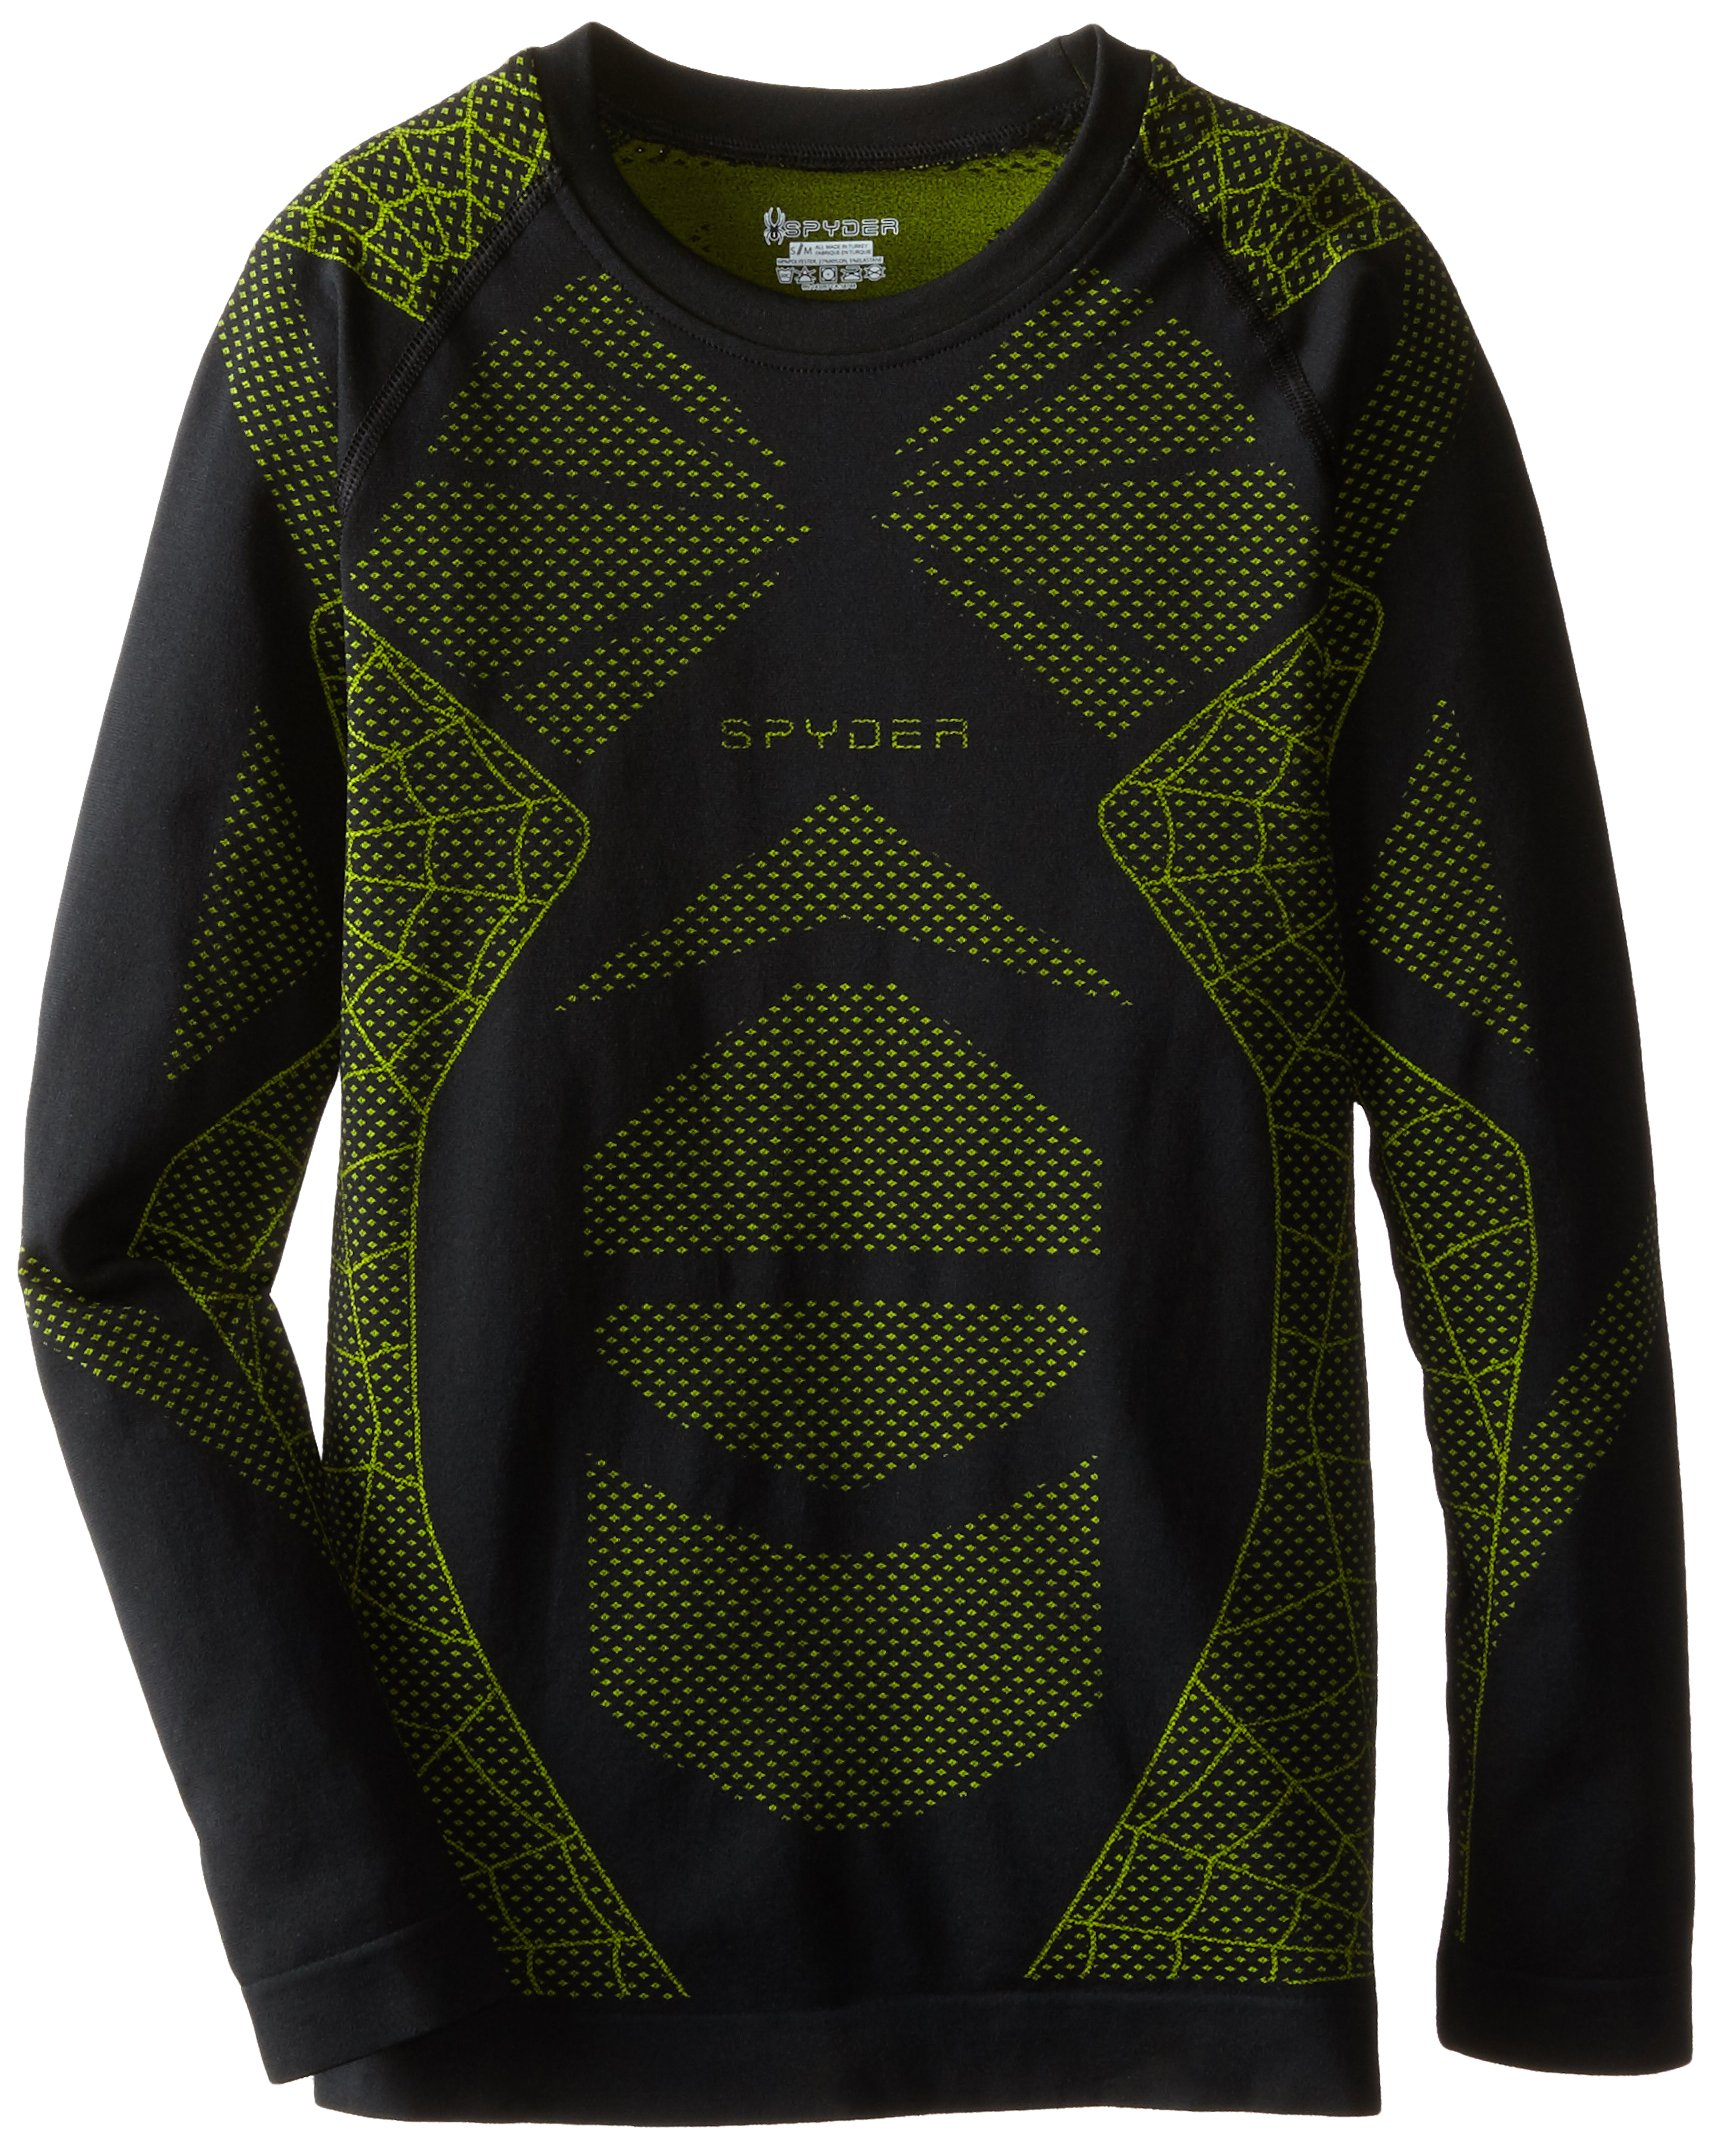 Spyder Boys KidsLittle Racer Long Sleeve Top (Little Big Kids), Black/Theory Green, Small/Medium